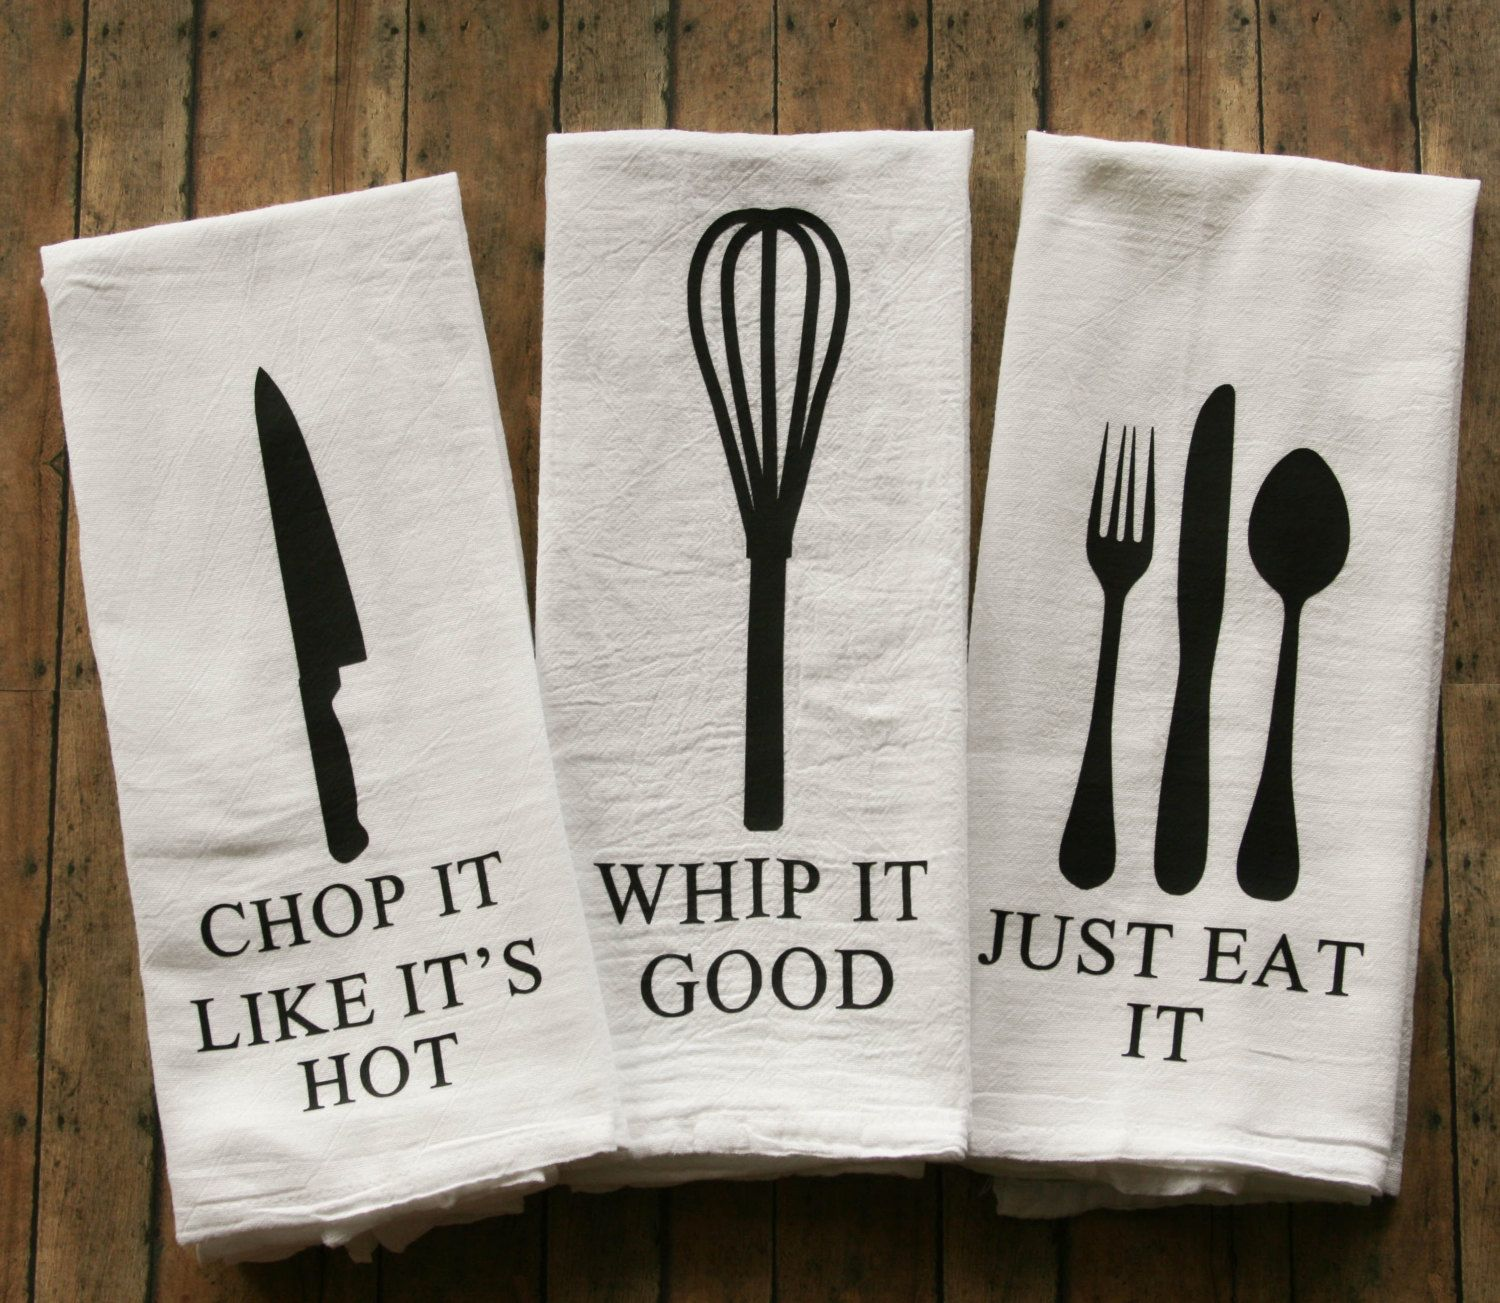 Funny Song Lyric Tea Towels - Flour Sack Towels - Just Eat It - Whip ...